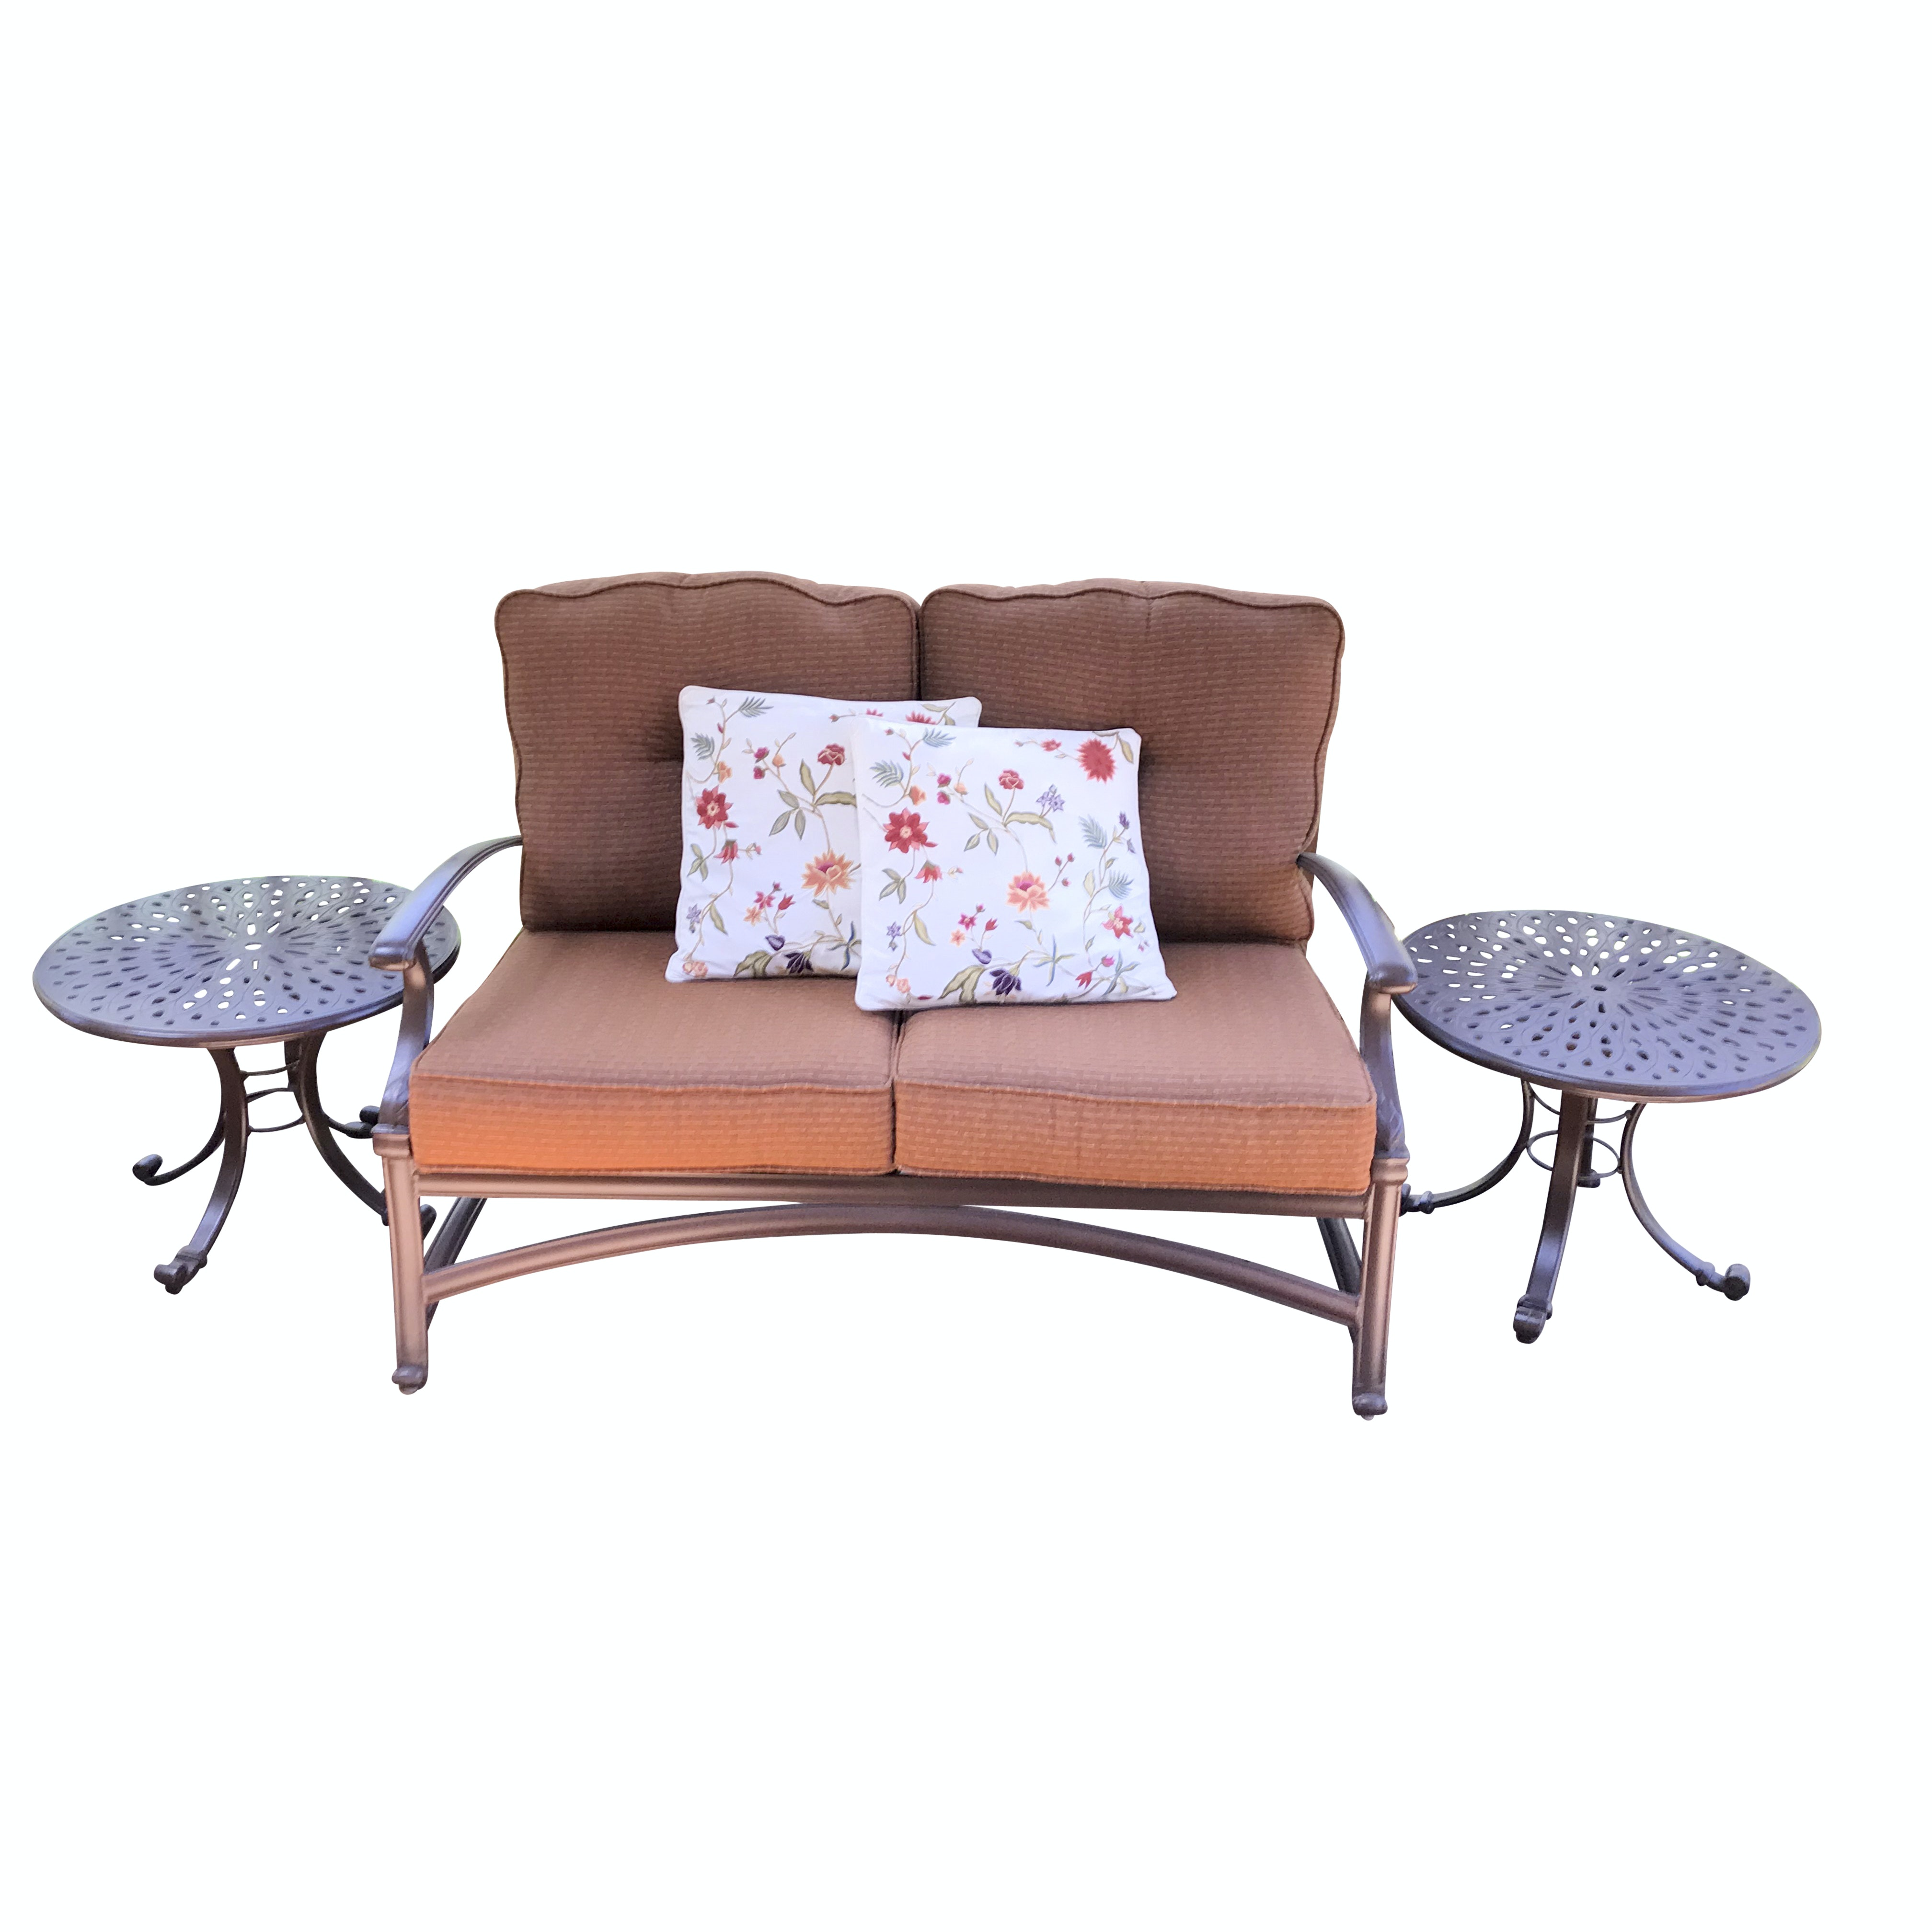 Winston Metal Patio Loveseat and Side Tables with Cover